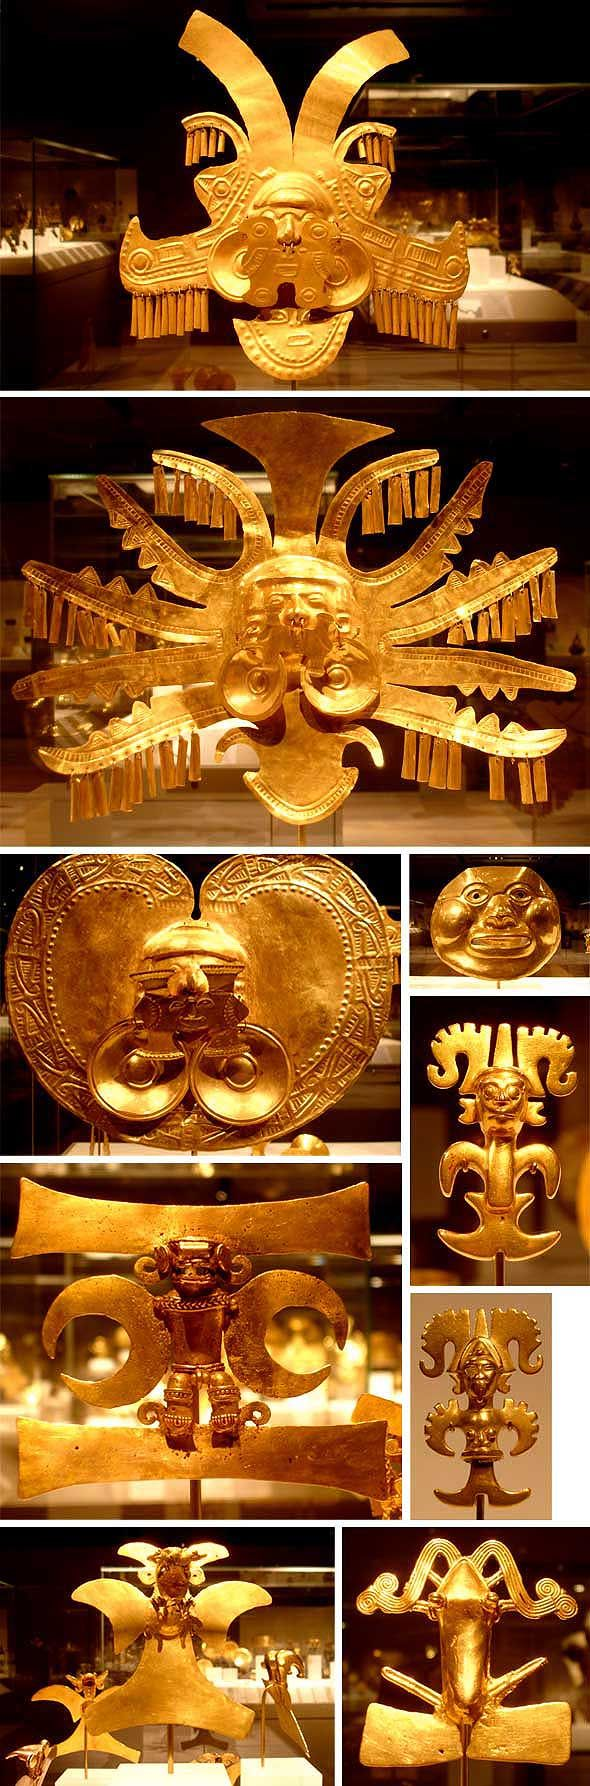 I find these pieces of Pre-Columbian gold jewellery tremendously inspiring. So, of course, did Col...